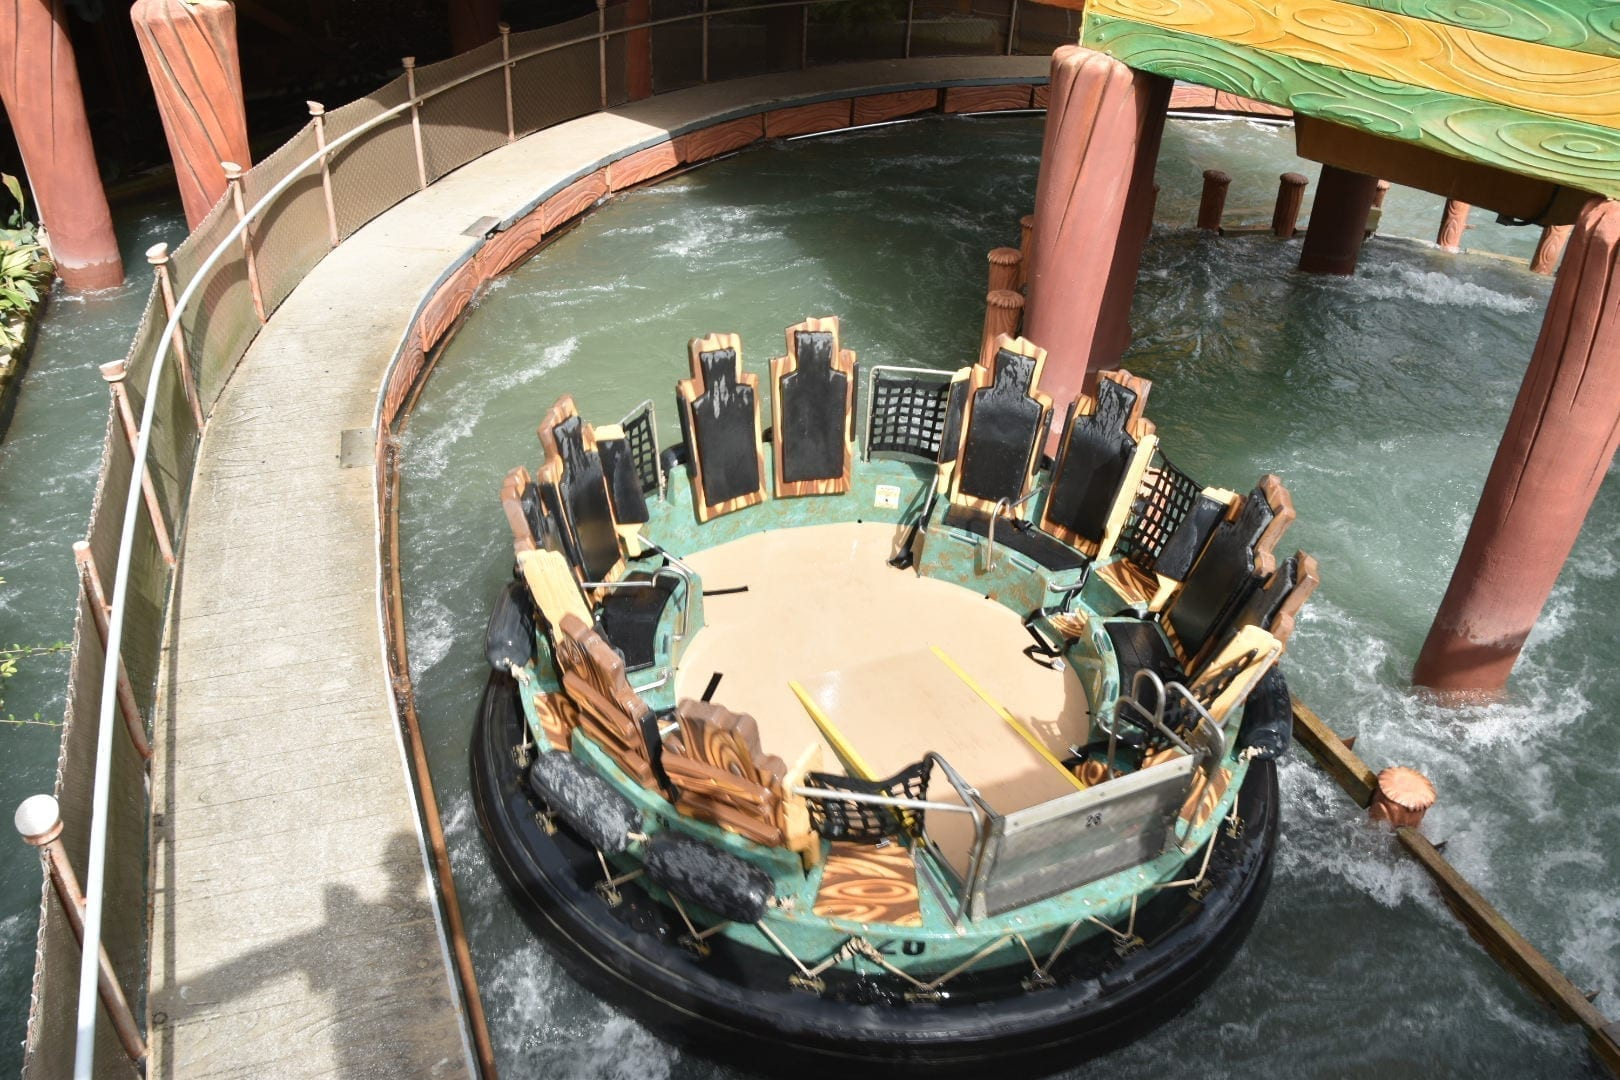 Best rides at islands of Adventure -Popeye River Ride at Universal